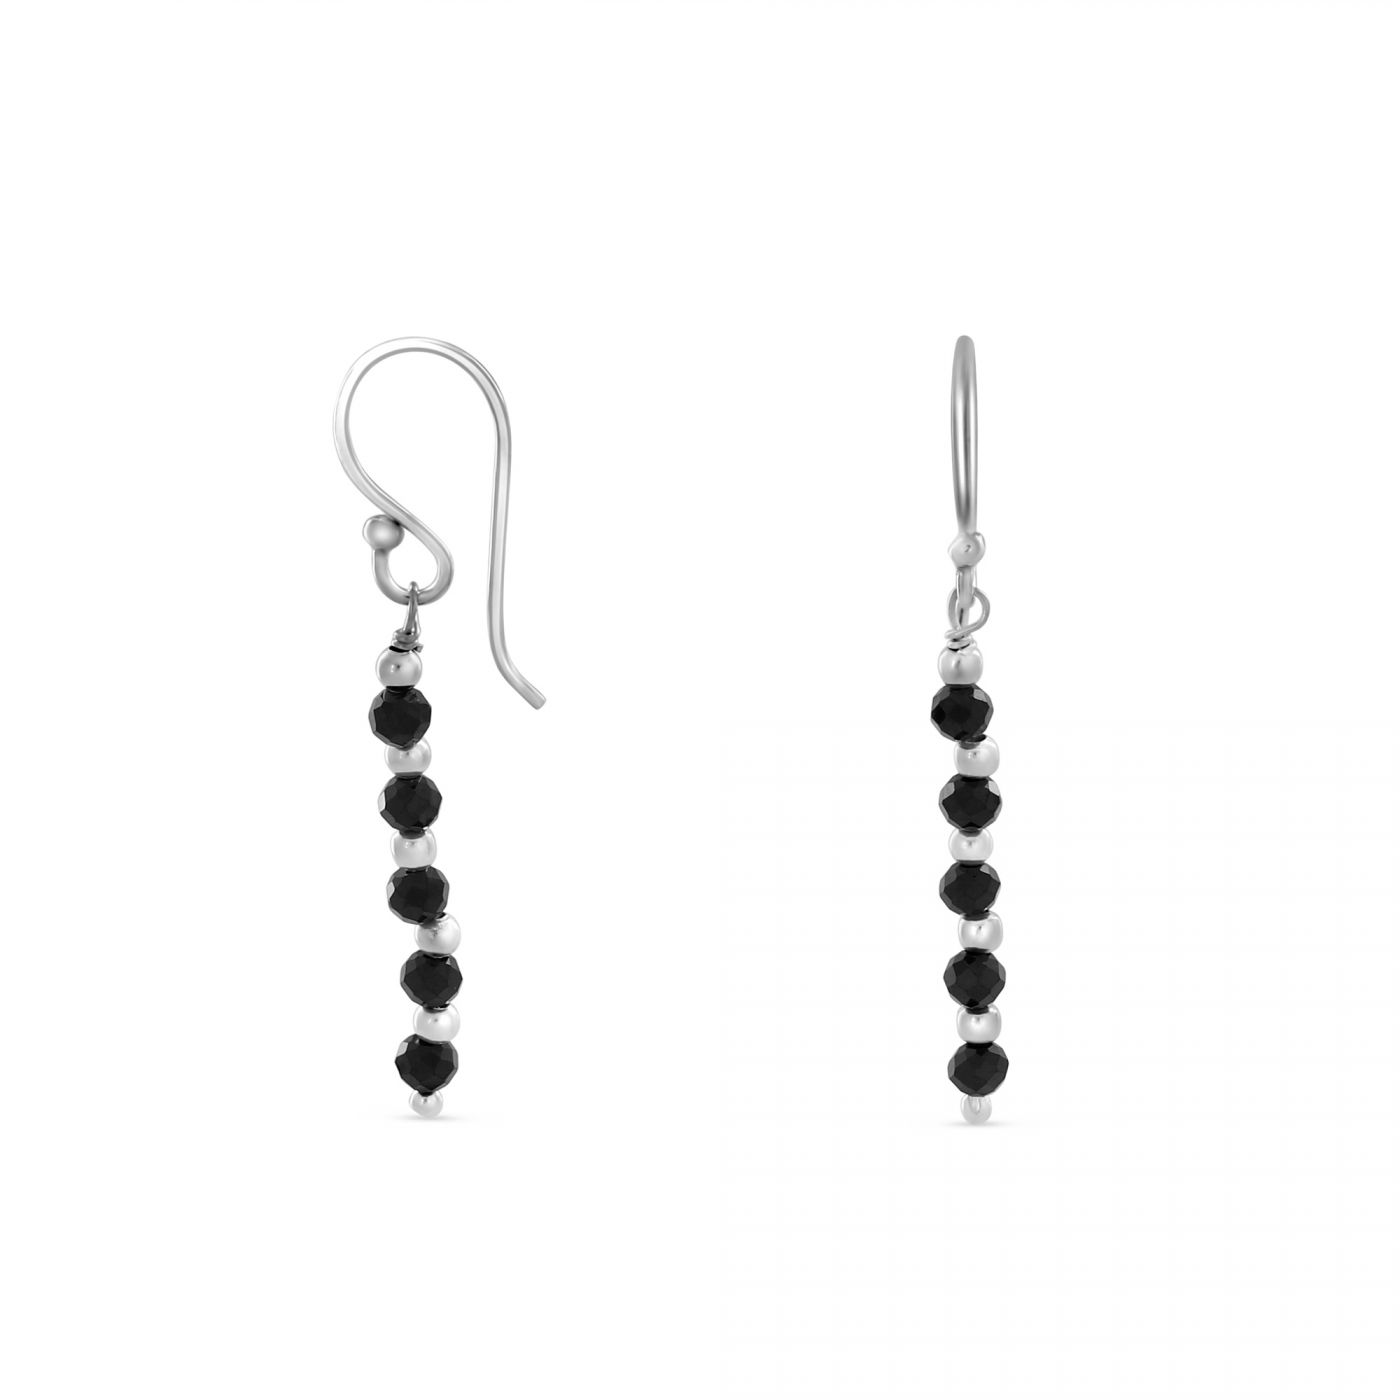 oval rocks black product jewelry earrings sterling spinel glitzy silver tgw watches